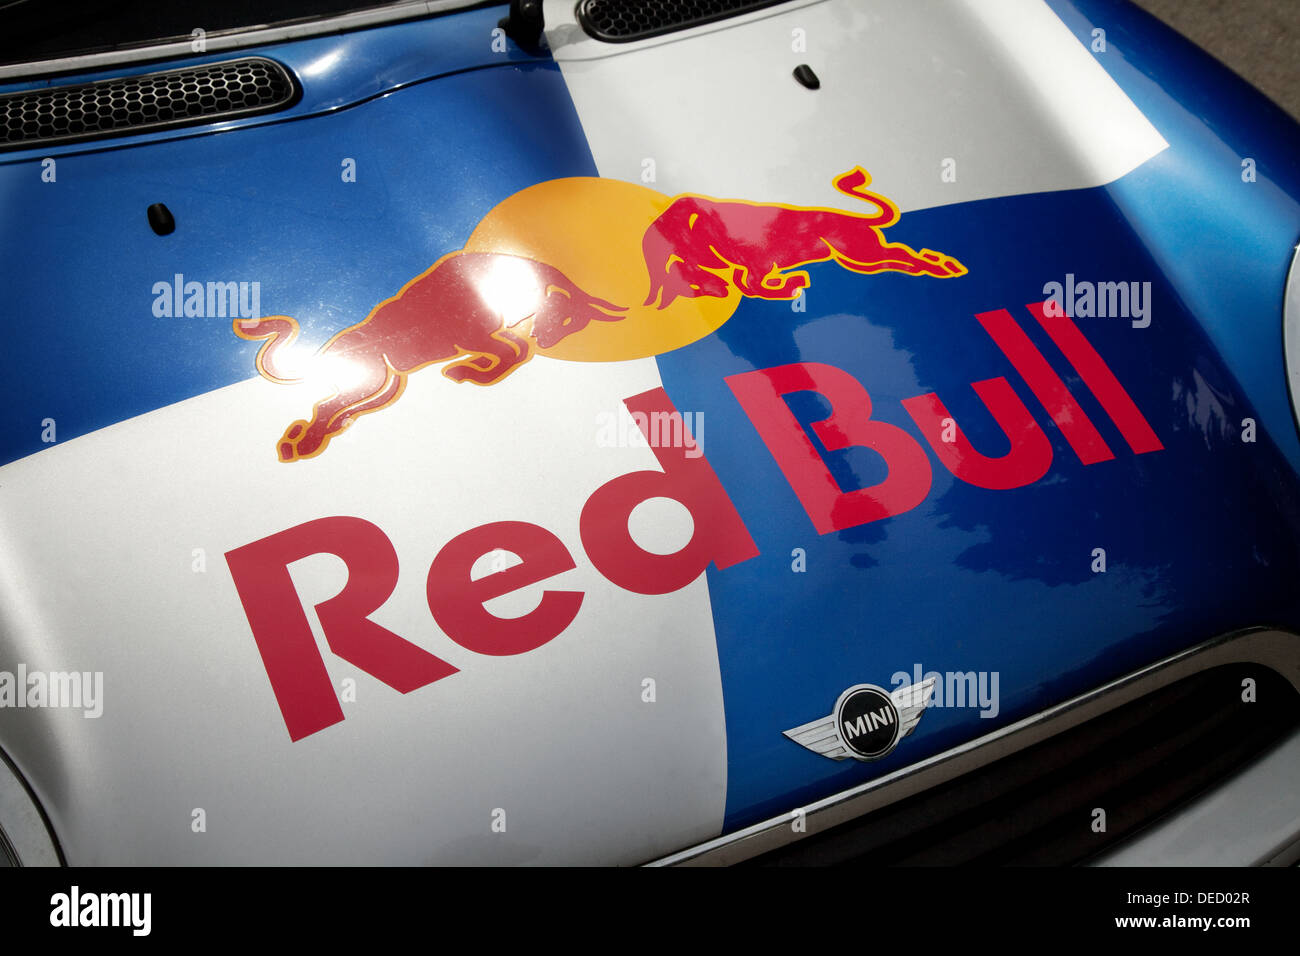 Red Bull energy drink mini car close up, UK Photo Stock